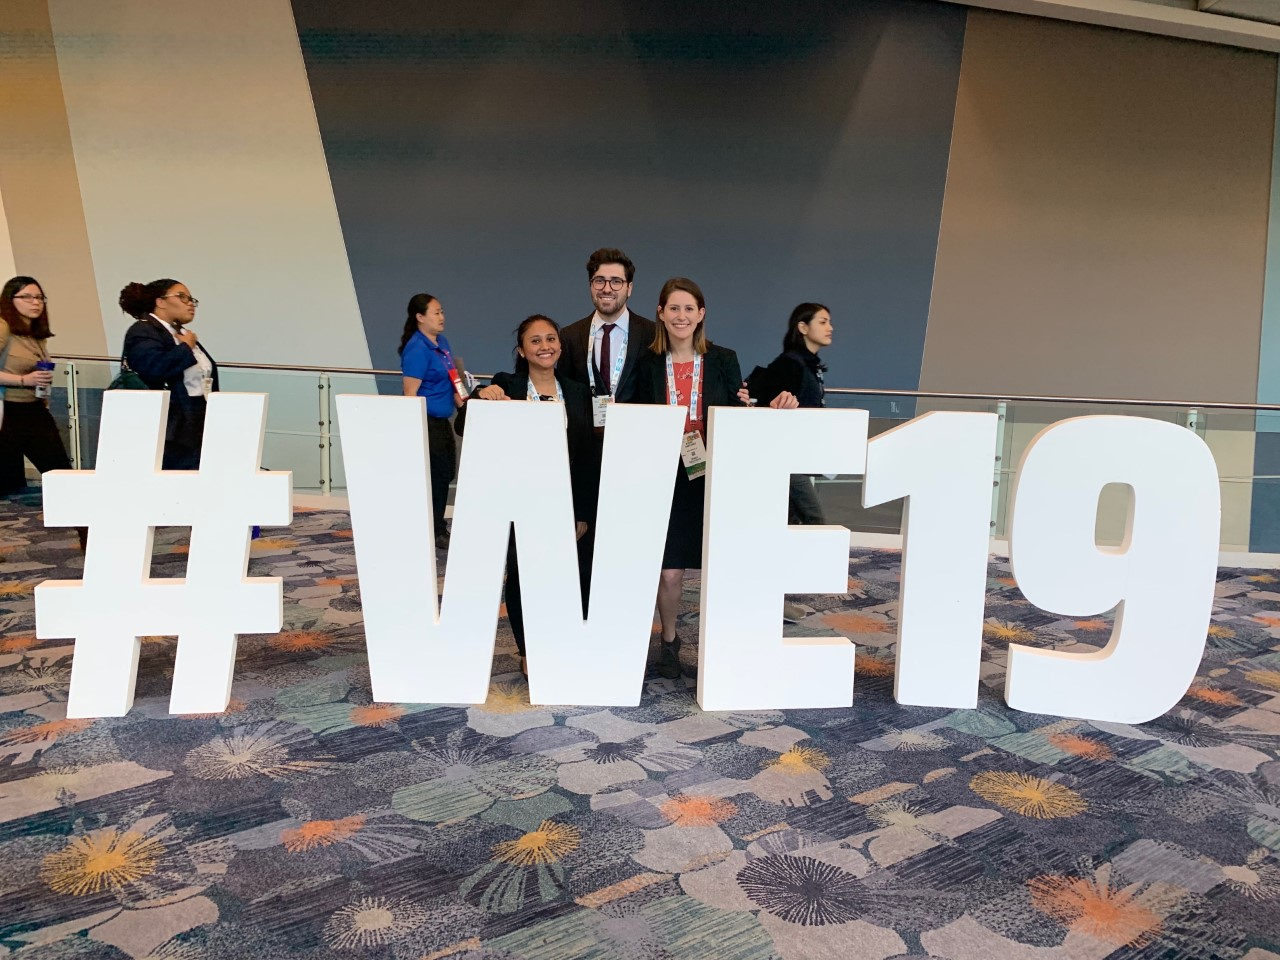 Vaughn College Chapter of the Society of Women Engineers Attend the 2019 Women Engineers Conference